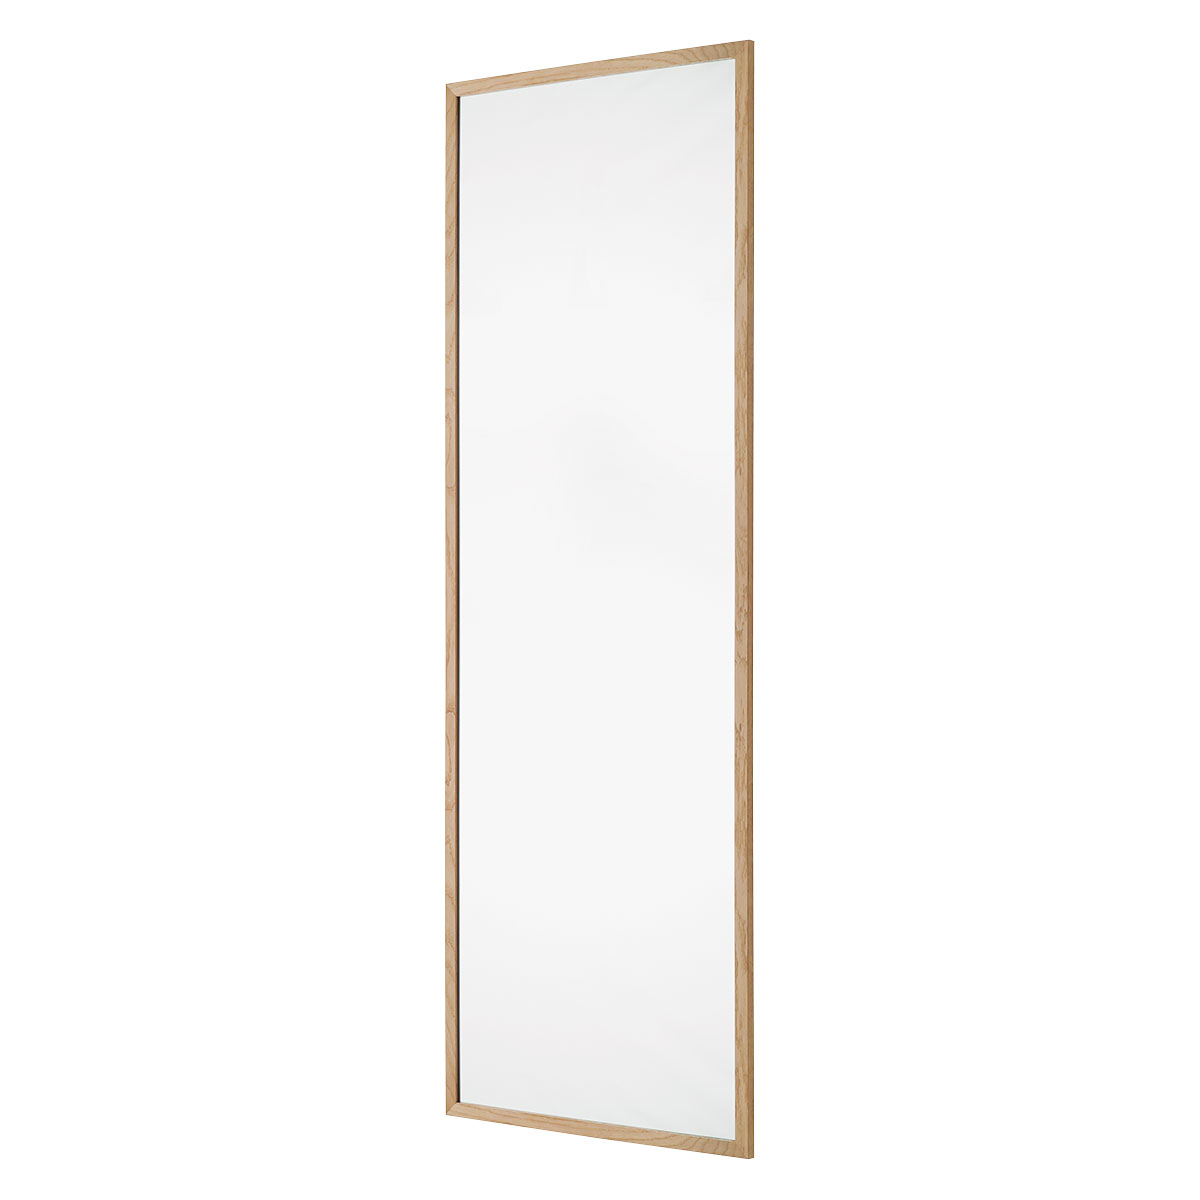 Full Length Wall Mirrors With Regard To 2019 Ontario 45 X 135cm Oak Full Length Wall Mirror (View 4 of 20)